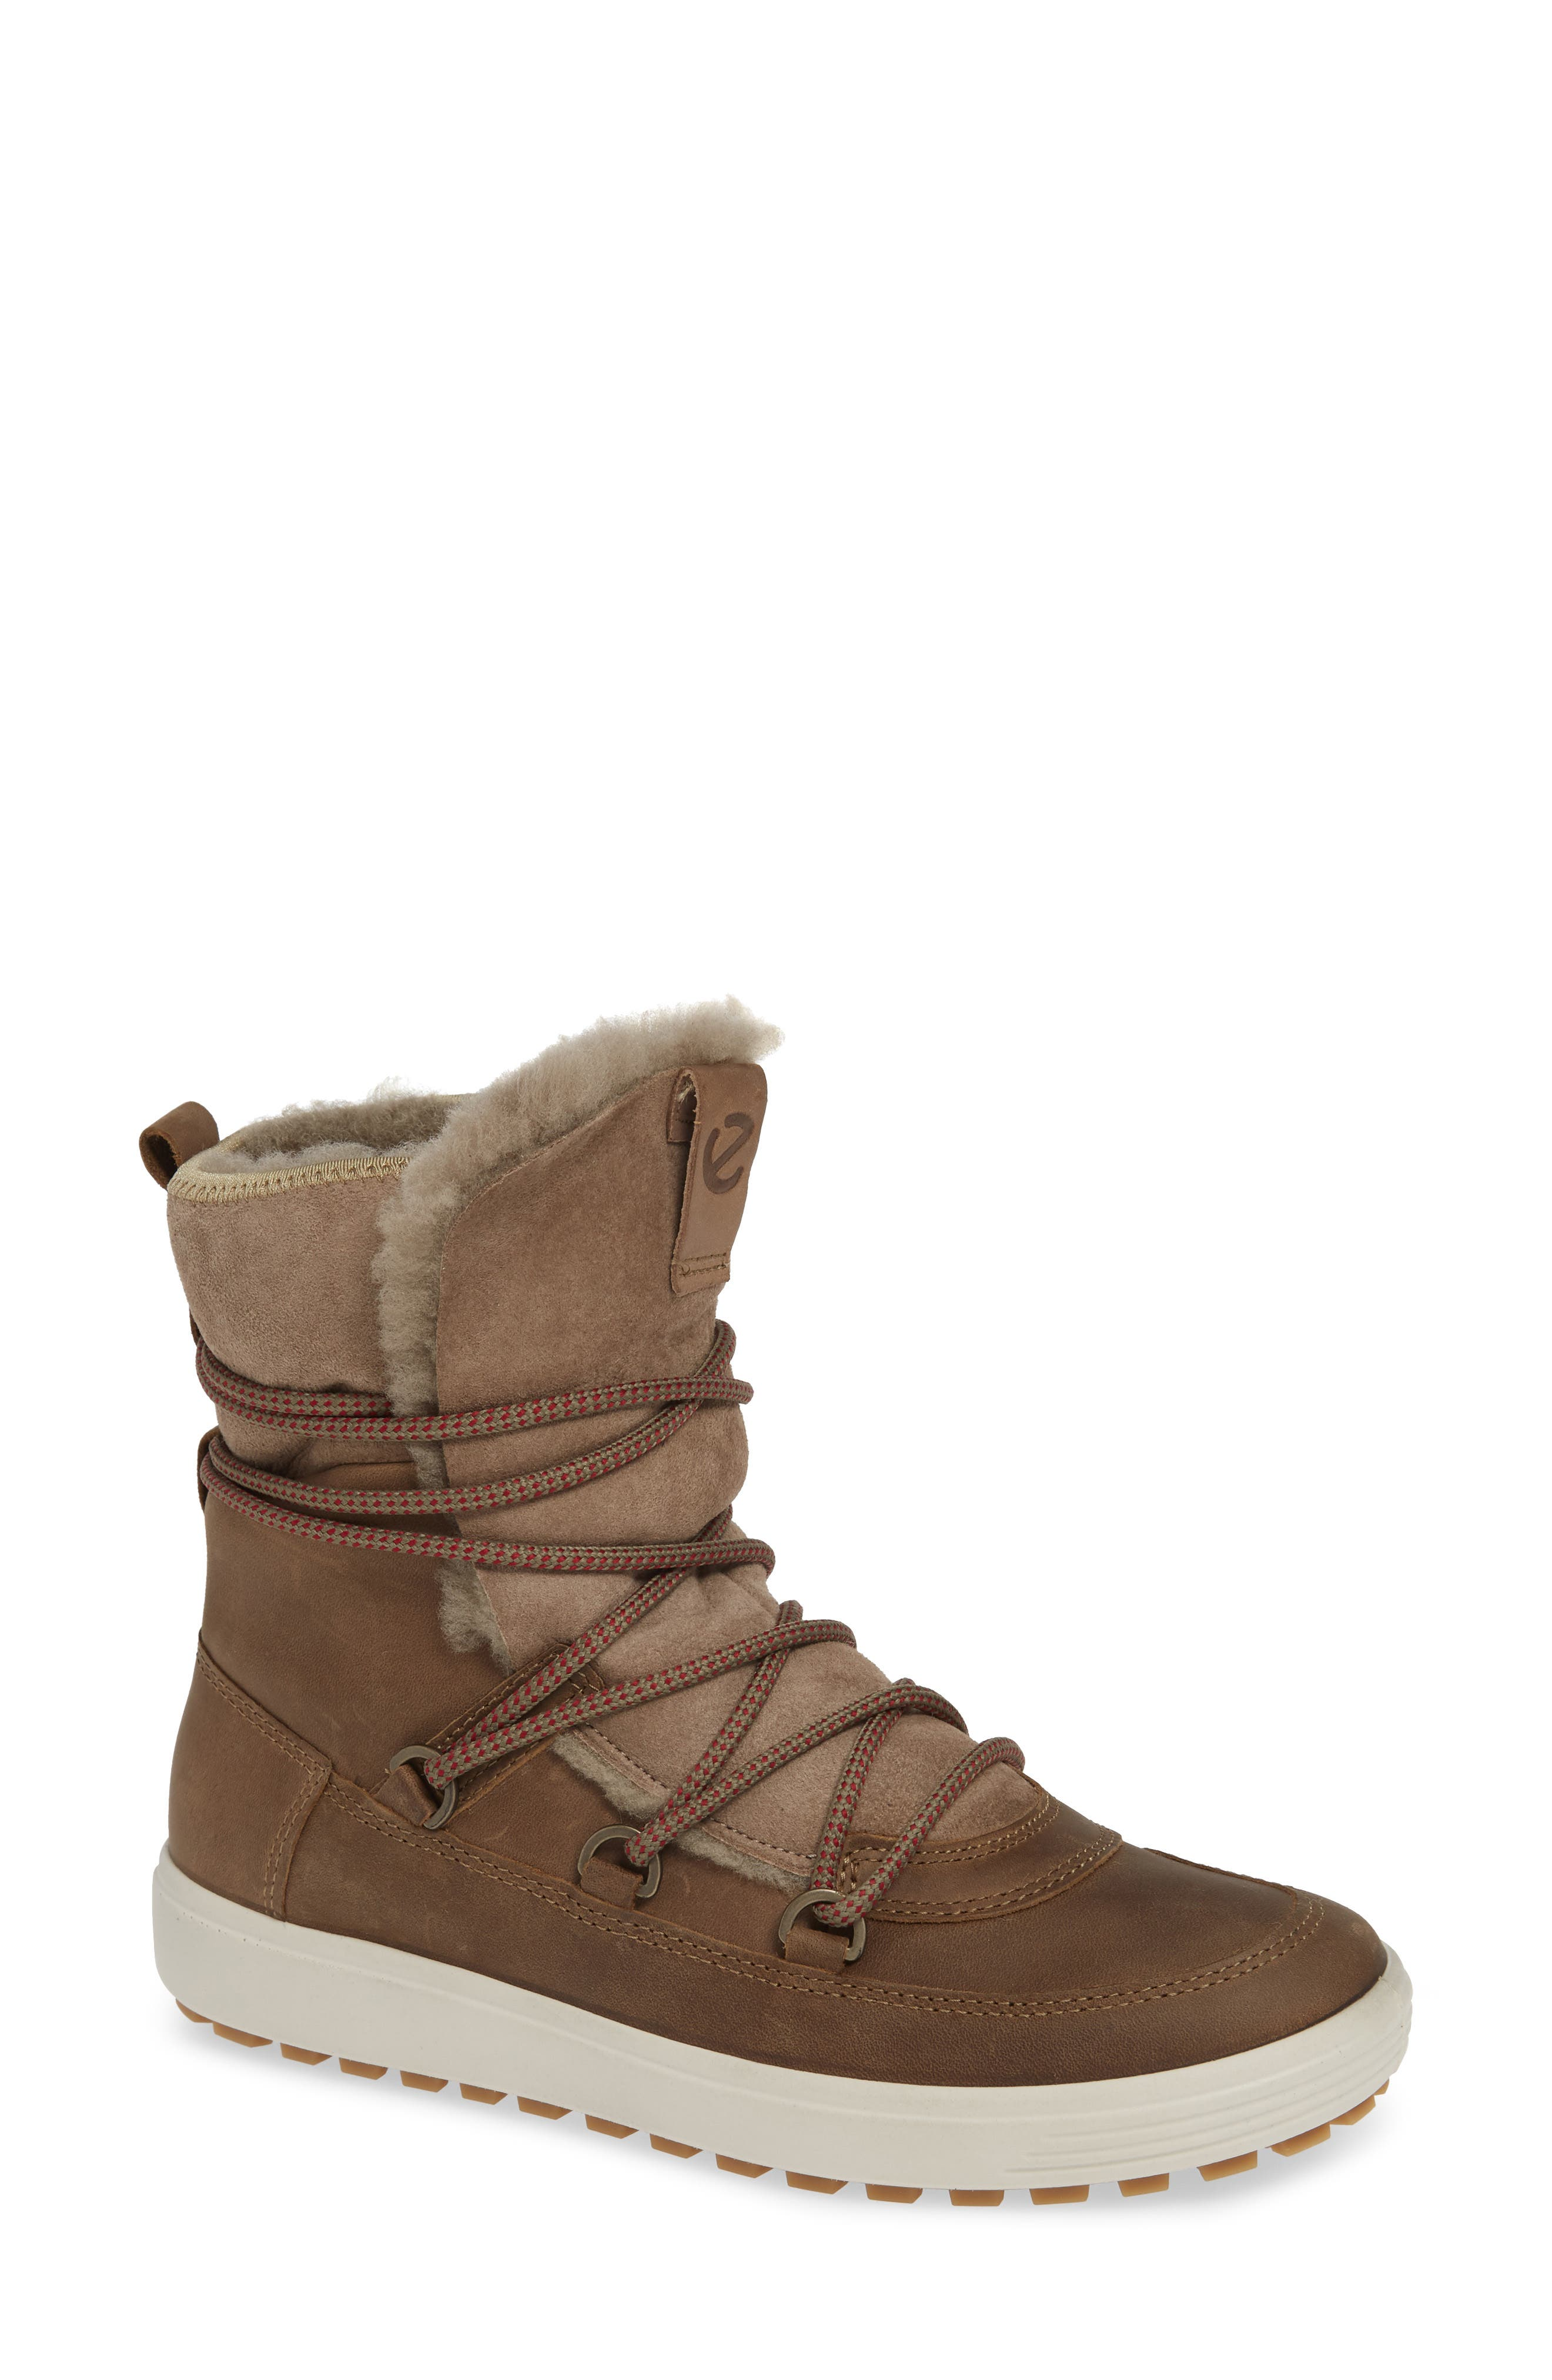 Ecco Soft 7 Tred Waterproof Genuine Shearling Lined Bootie, Brown